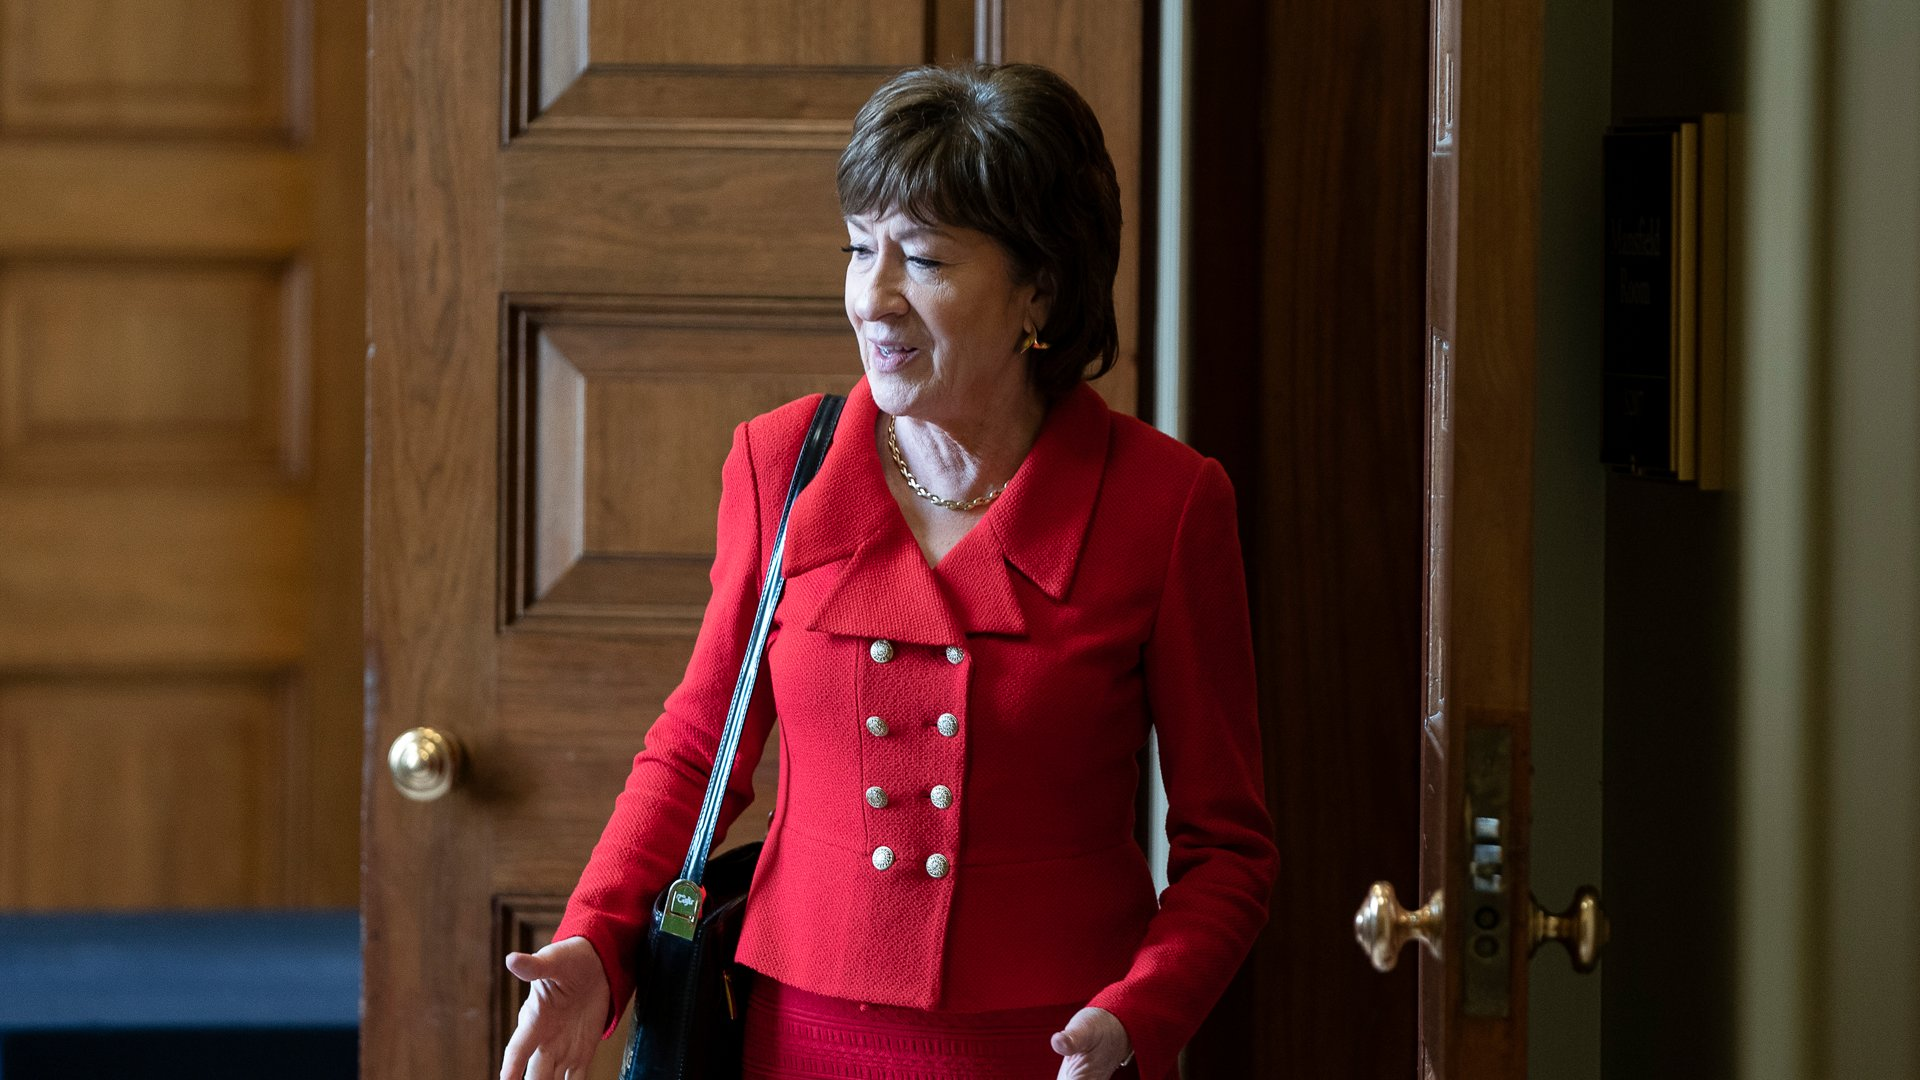 Sen. Susan Collins, R-Maine, departs a Senate policy lunch at the U.S. Capitol on February 4, 2020 in Washington, DC. (Credit: Alex Edelman/Getty Images)